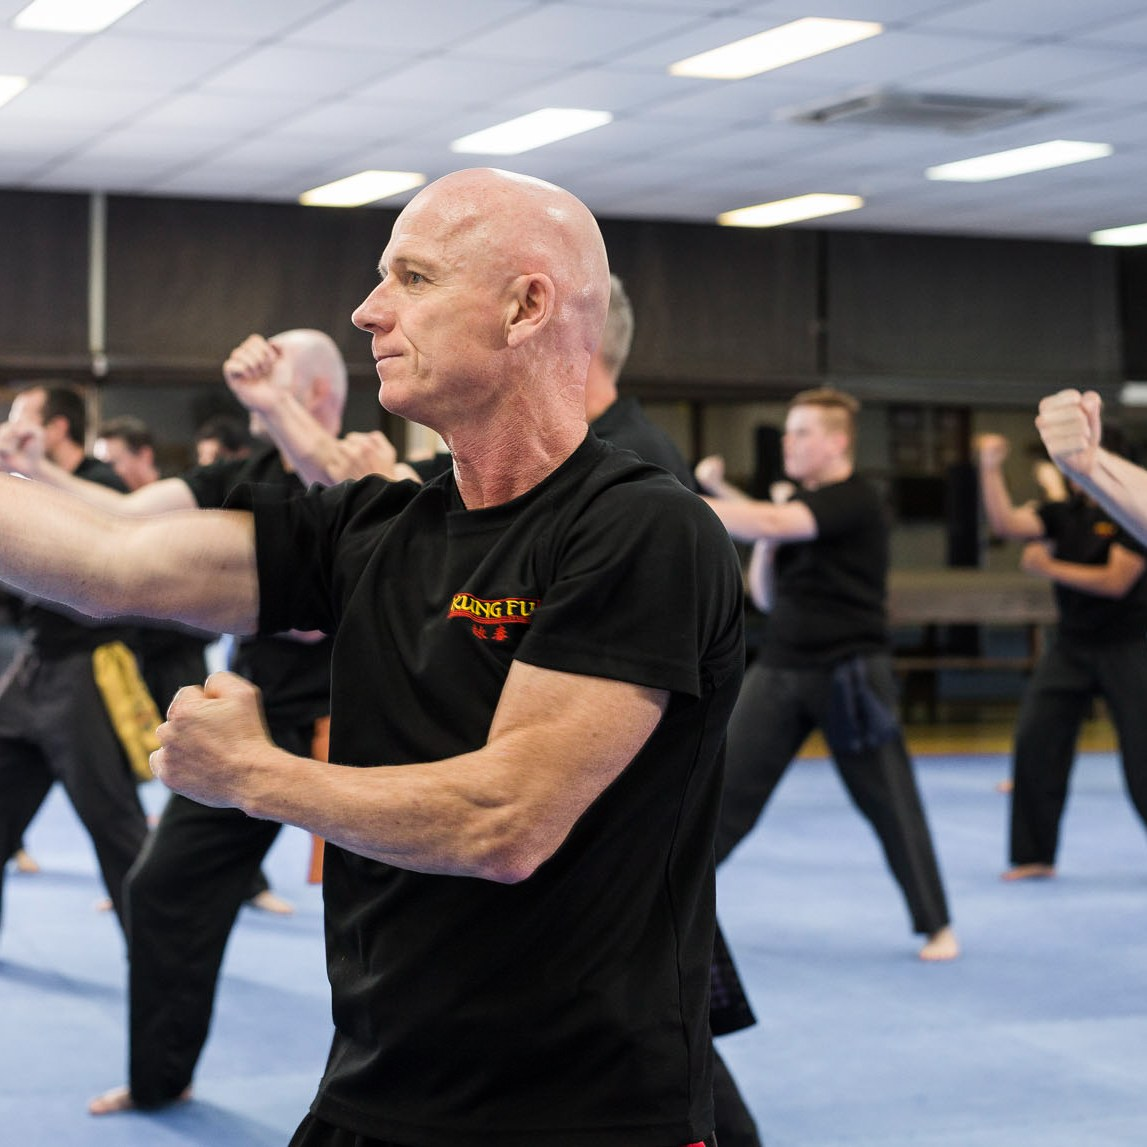 Sifu Paul running students through basic drills training kung fu classes at the Wing Chun Kung Fu Studio 118 South Pine Road Brendale Qld Australia.